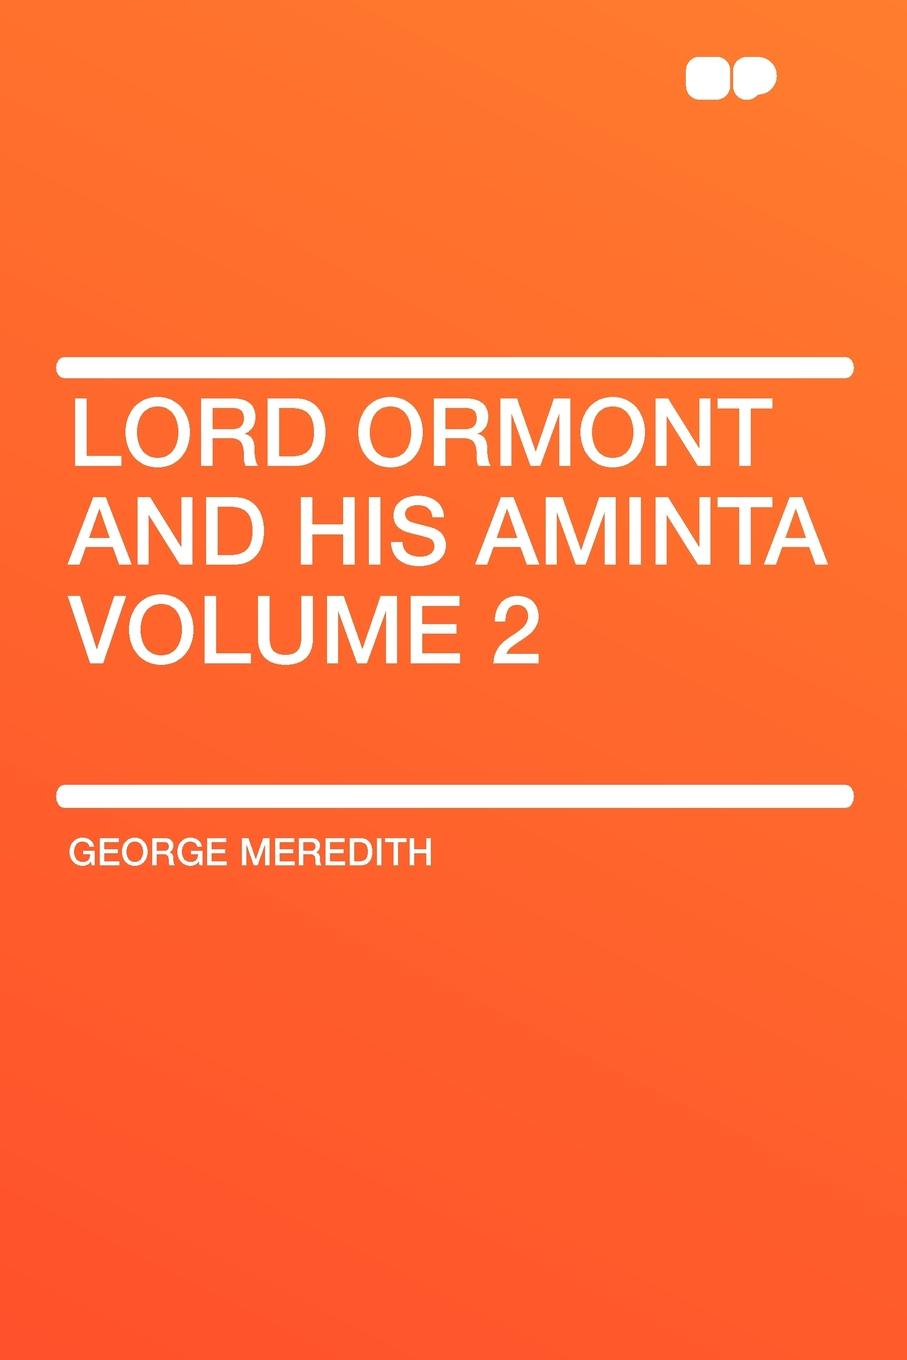 George Meredith Lord Ormont and His Aminta Volume 2 george meredith lord ormont and his aminta complete